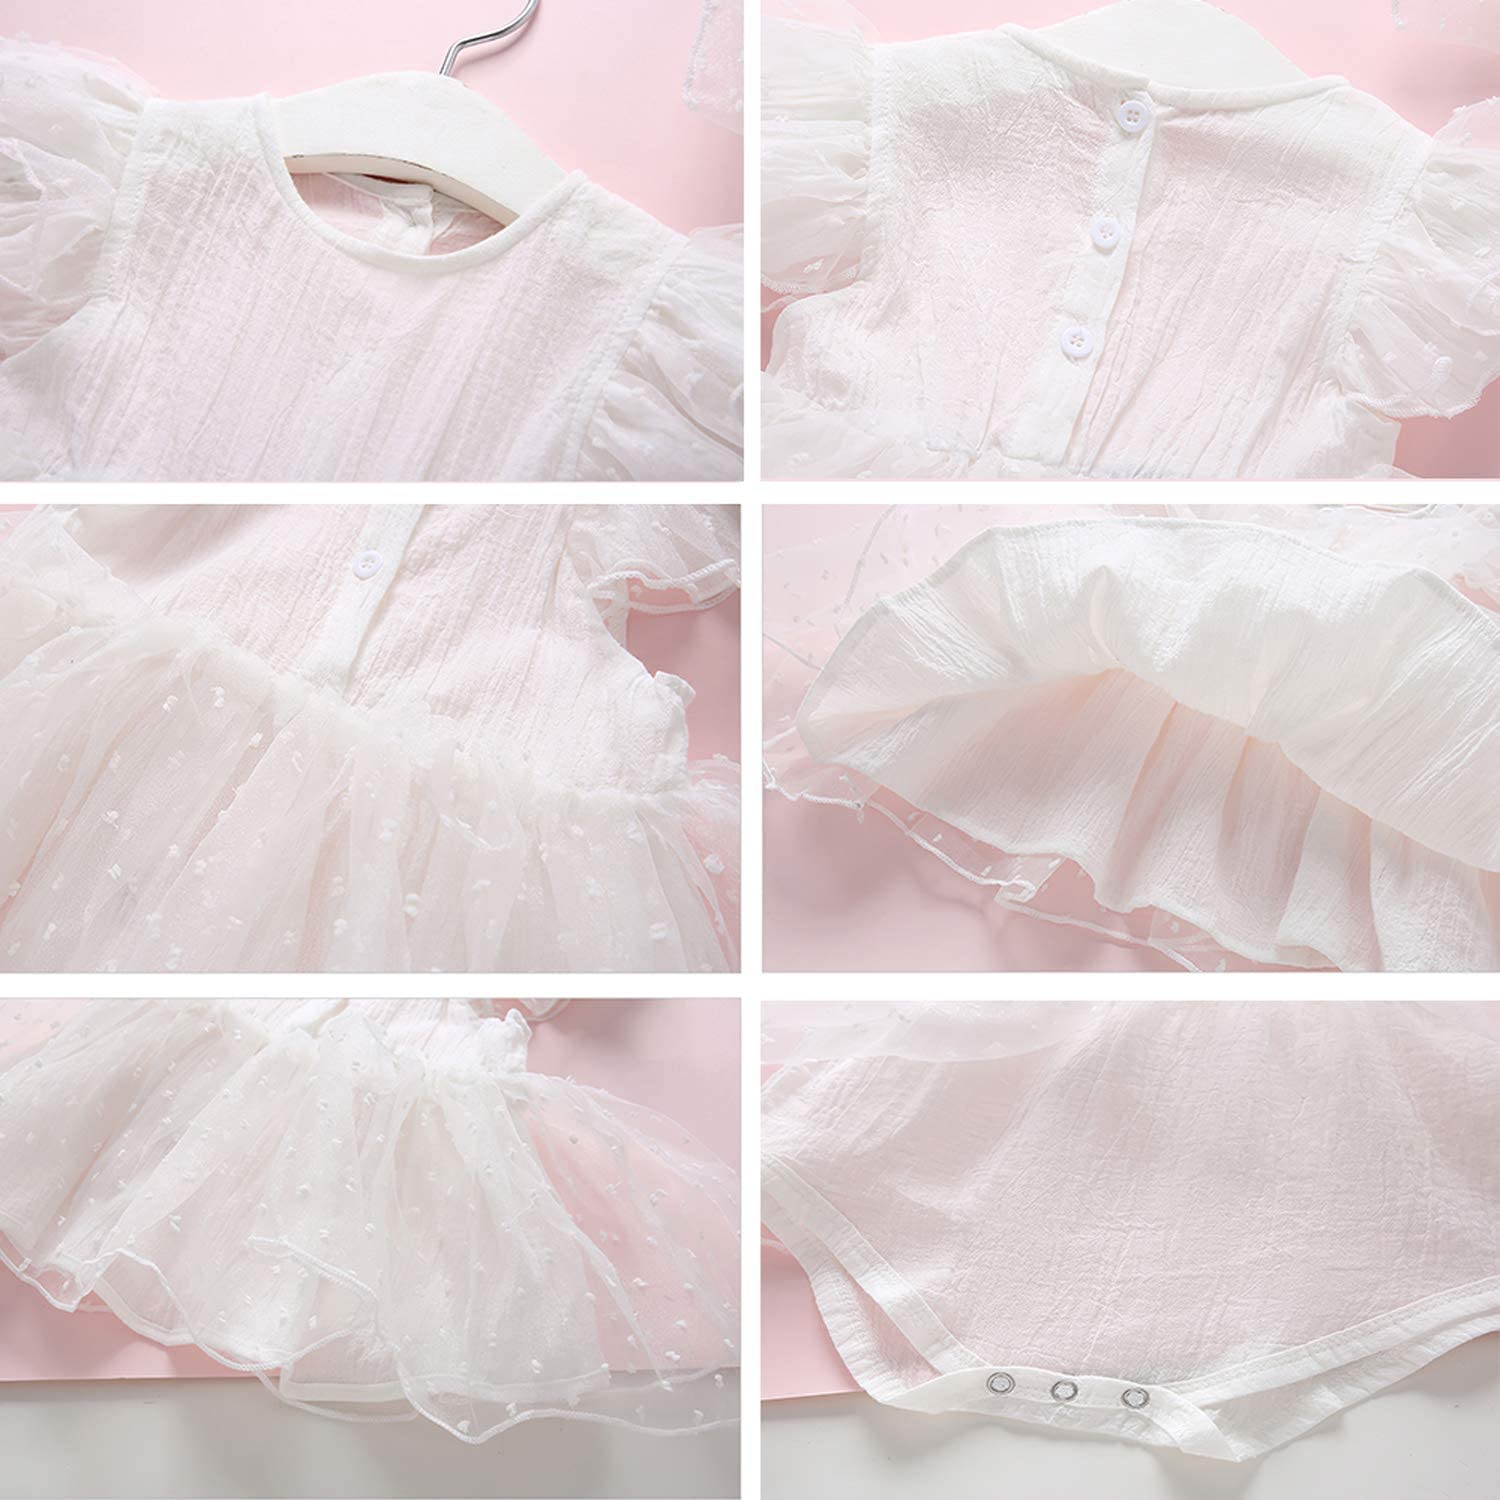 Yilaku Baby Girls Flower Christening Baptism Dress Formal Party Special Occasion Dresses for Toddler